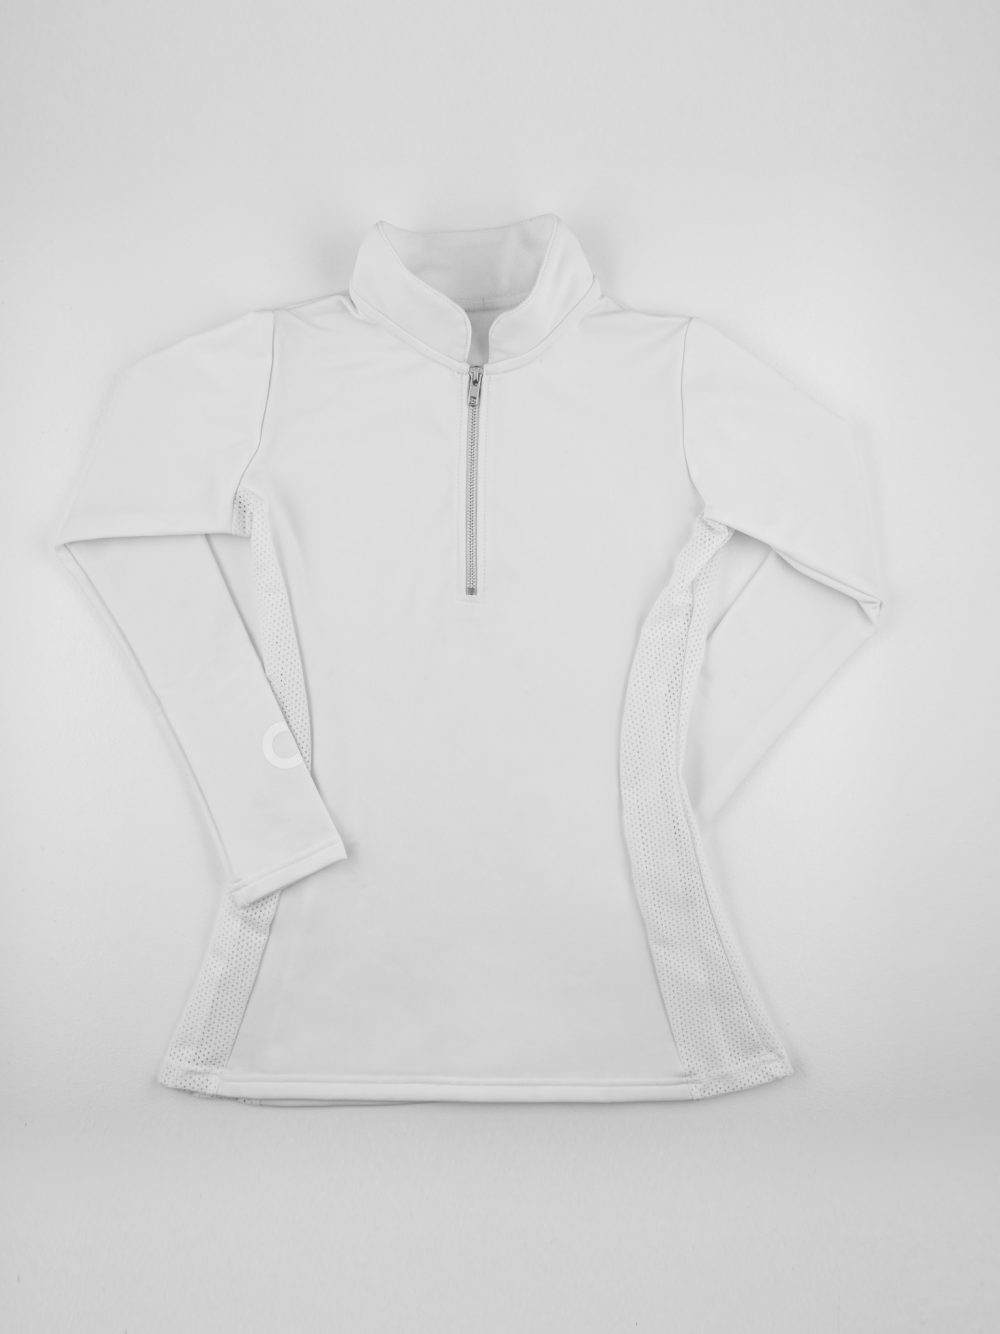 American Equus Technical Rider Wear - Base Layer Top White